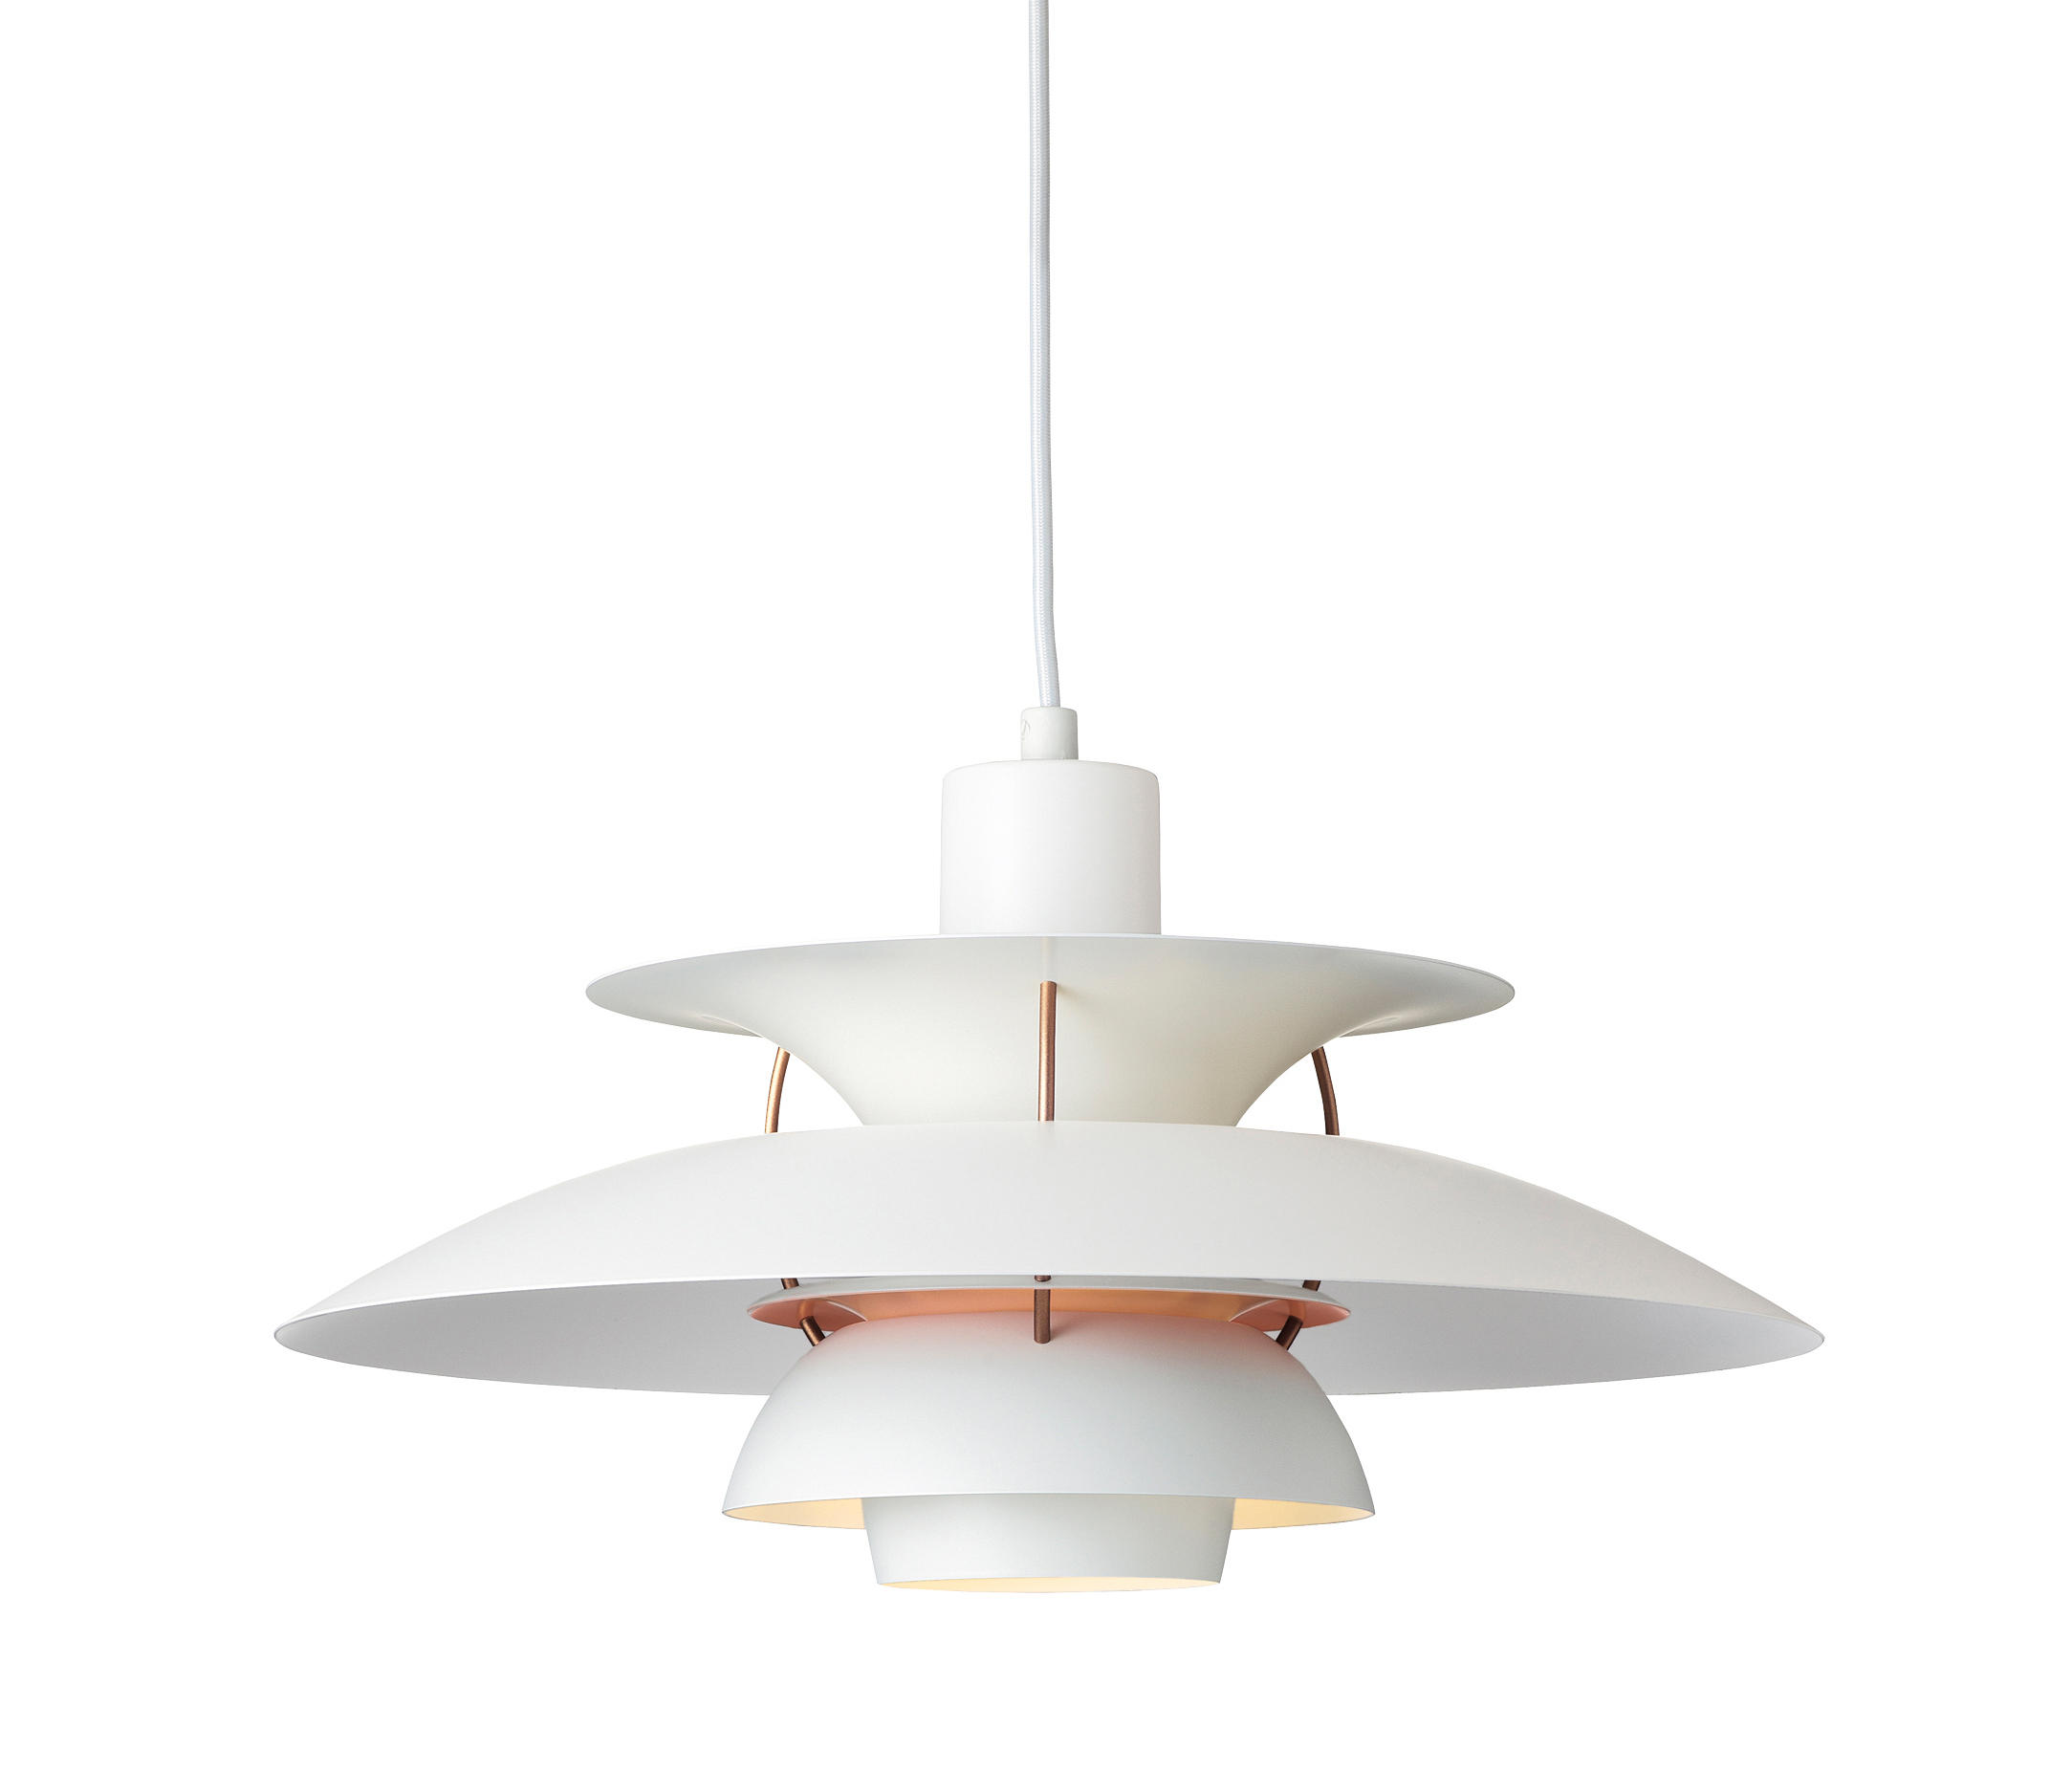 Ph Lighting Intended Ph Pendant By Louis Poulsen Suspended Lights Pendant From Architonic